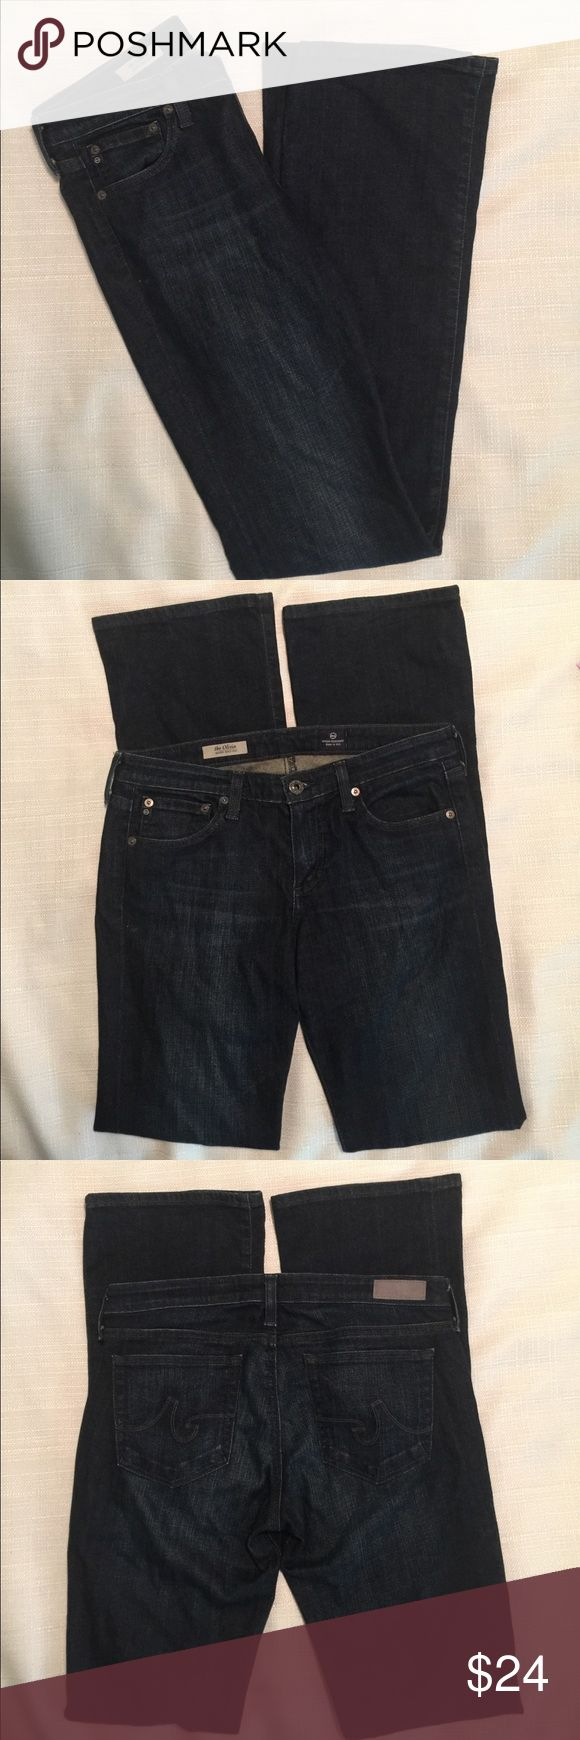 AG Adriano Goldschmied Oliva Skinny Bootcut Sz 29R Size: 29R  Style: Olivia skinny boot cut  Wash:  Dark  Materials: 70% cotton/28% lyocell/2% polyurethane   Measurements (approximate)  Waist (laying flat): 15 inches  Inseam: 33 inches  Rise: 8.5 inches  Leg Opening (laying flat): 8.5 inches   Condition:  No rips, tears, or stains. Nice broken in condition AG Adriano Goldschmied Jeans Boot Cut